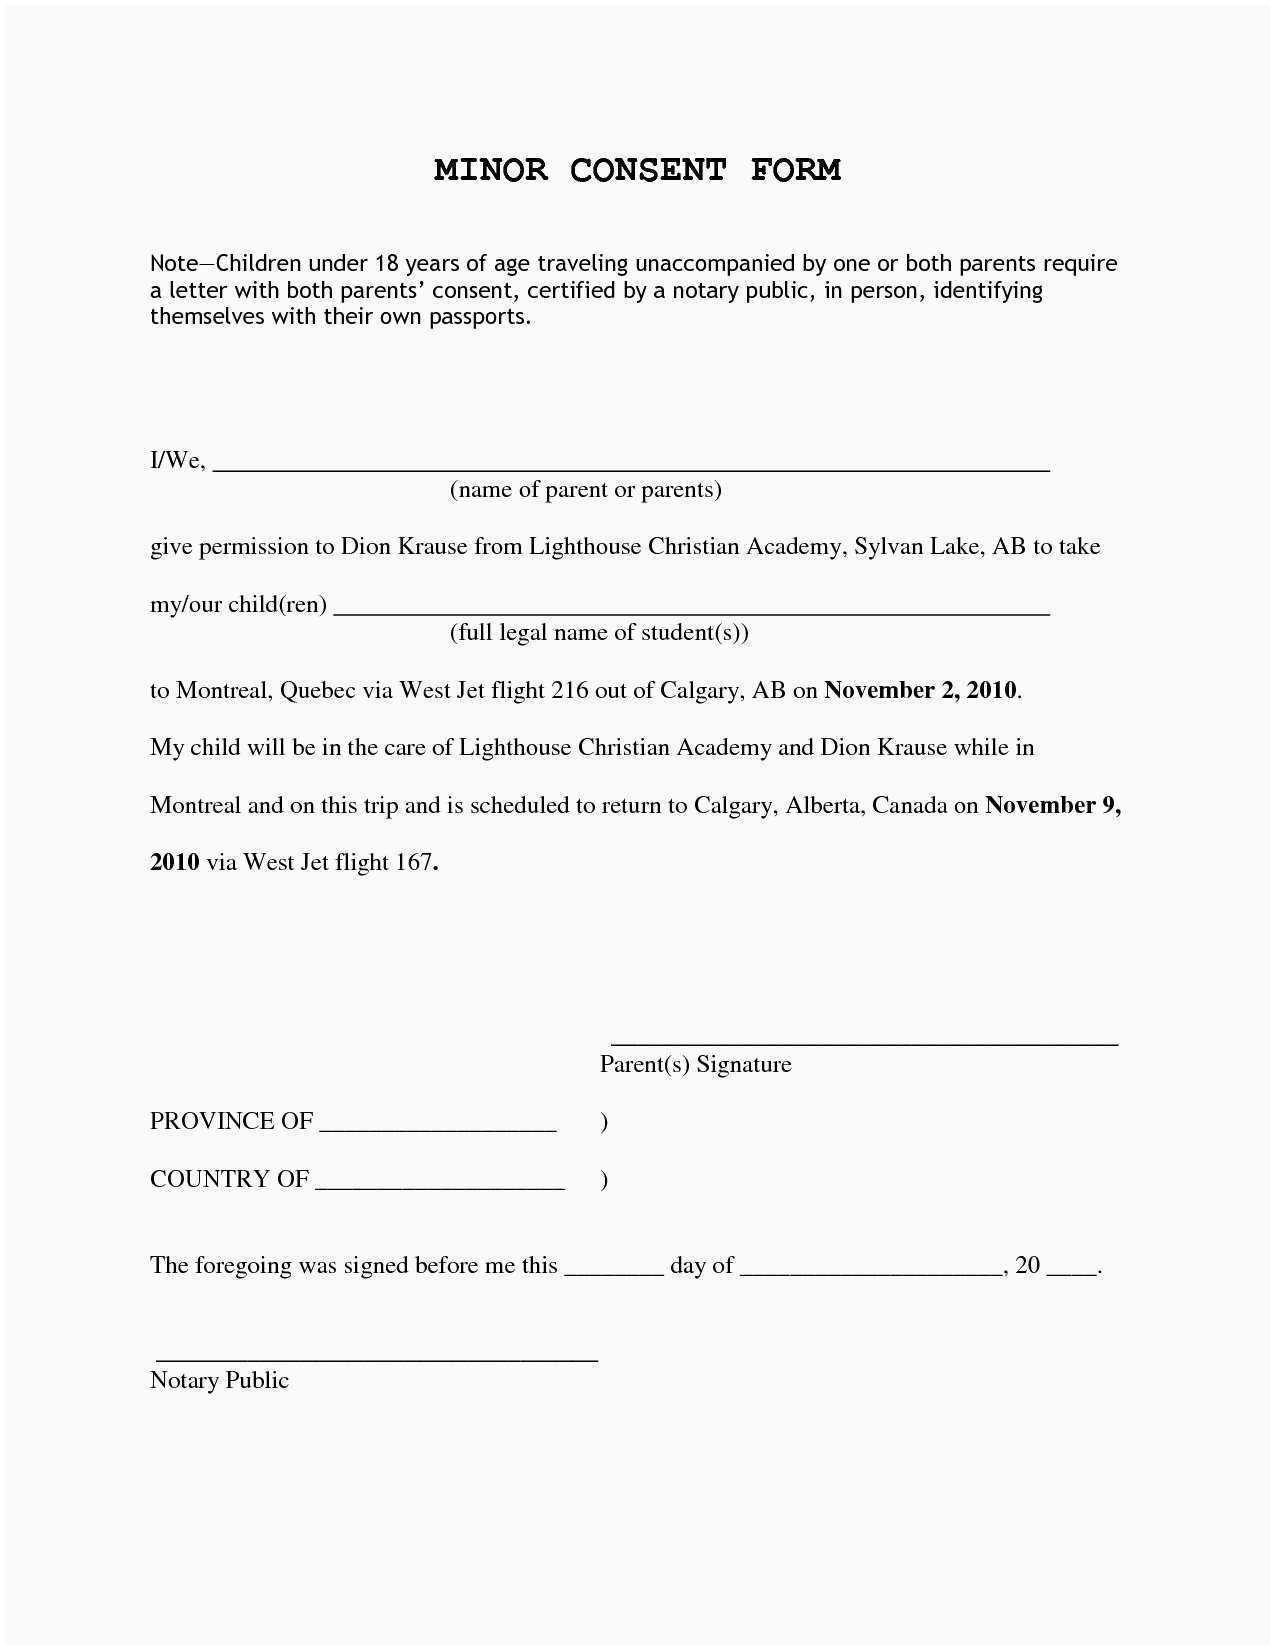 Child Travel Consent Letter Template - Example Of Permission Letter for Industrial Visit as Its Name Says